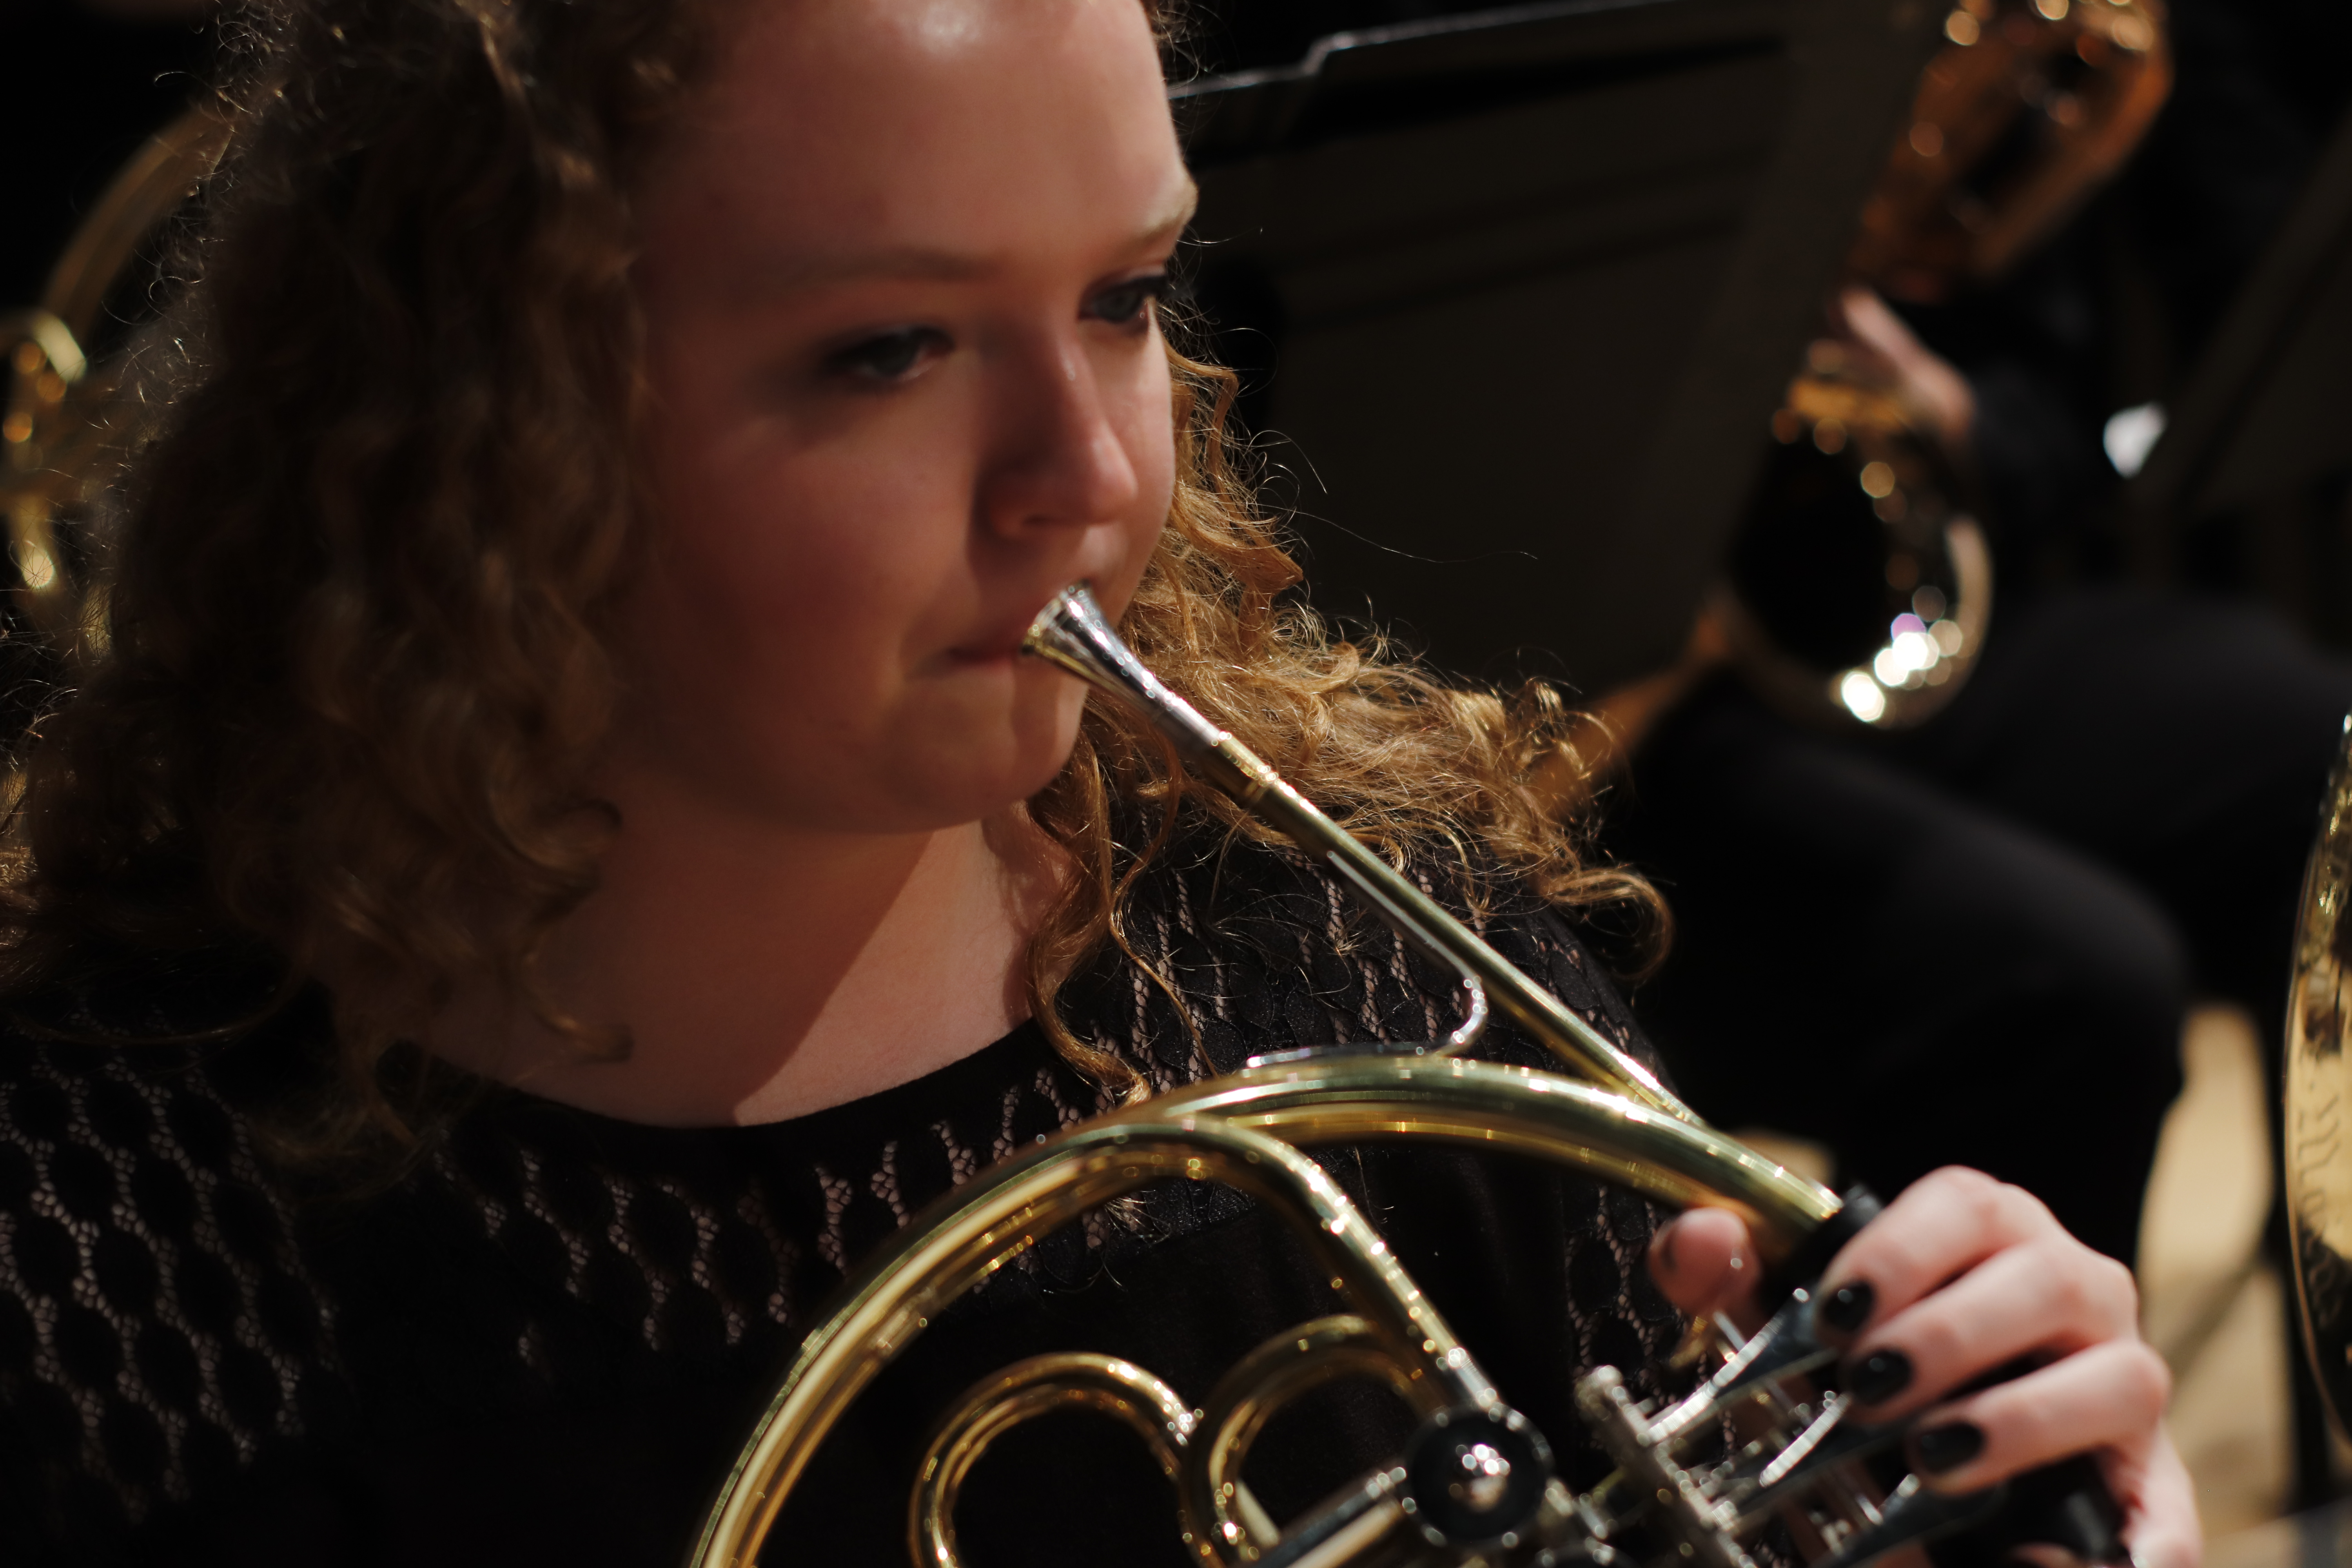 Performer on French Horn